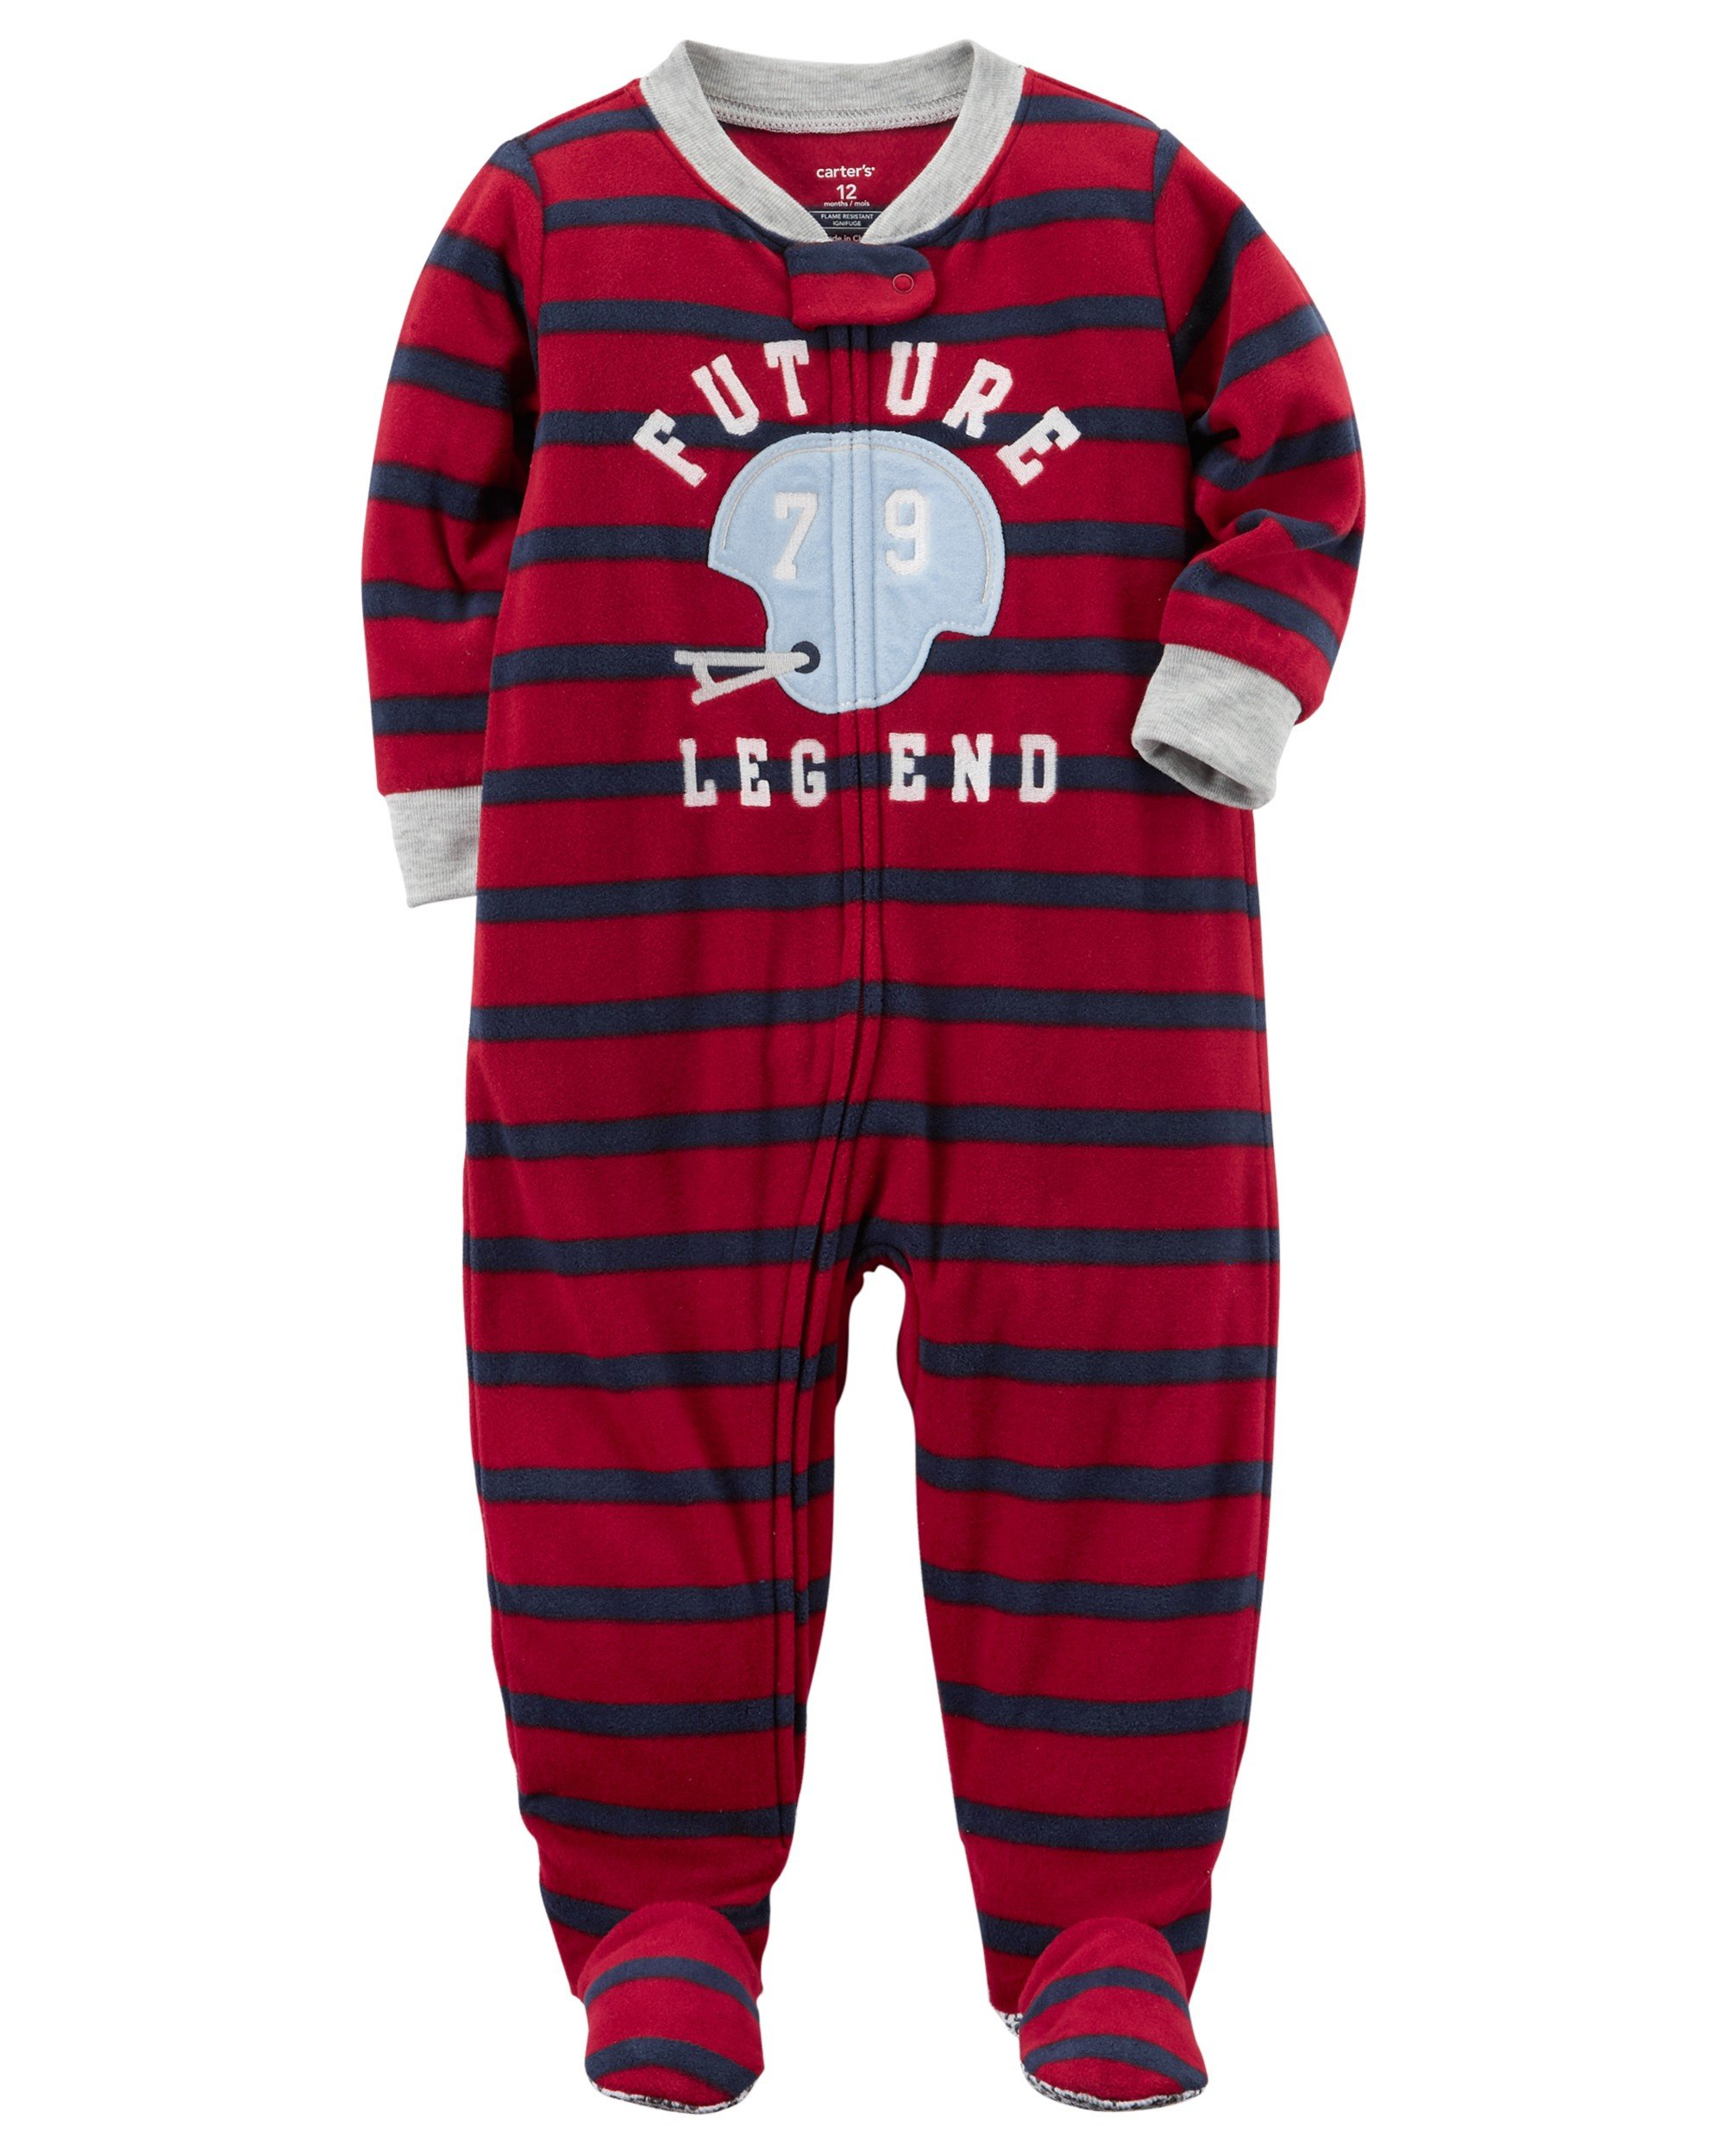 aa97293230d9 Galleon - Carter s Baby Boys  12M-12 One Piece Football Future ...